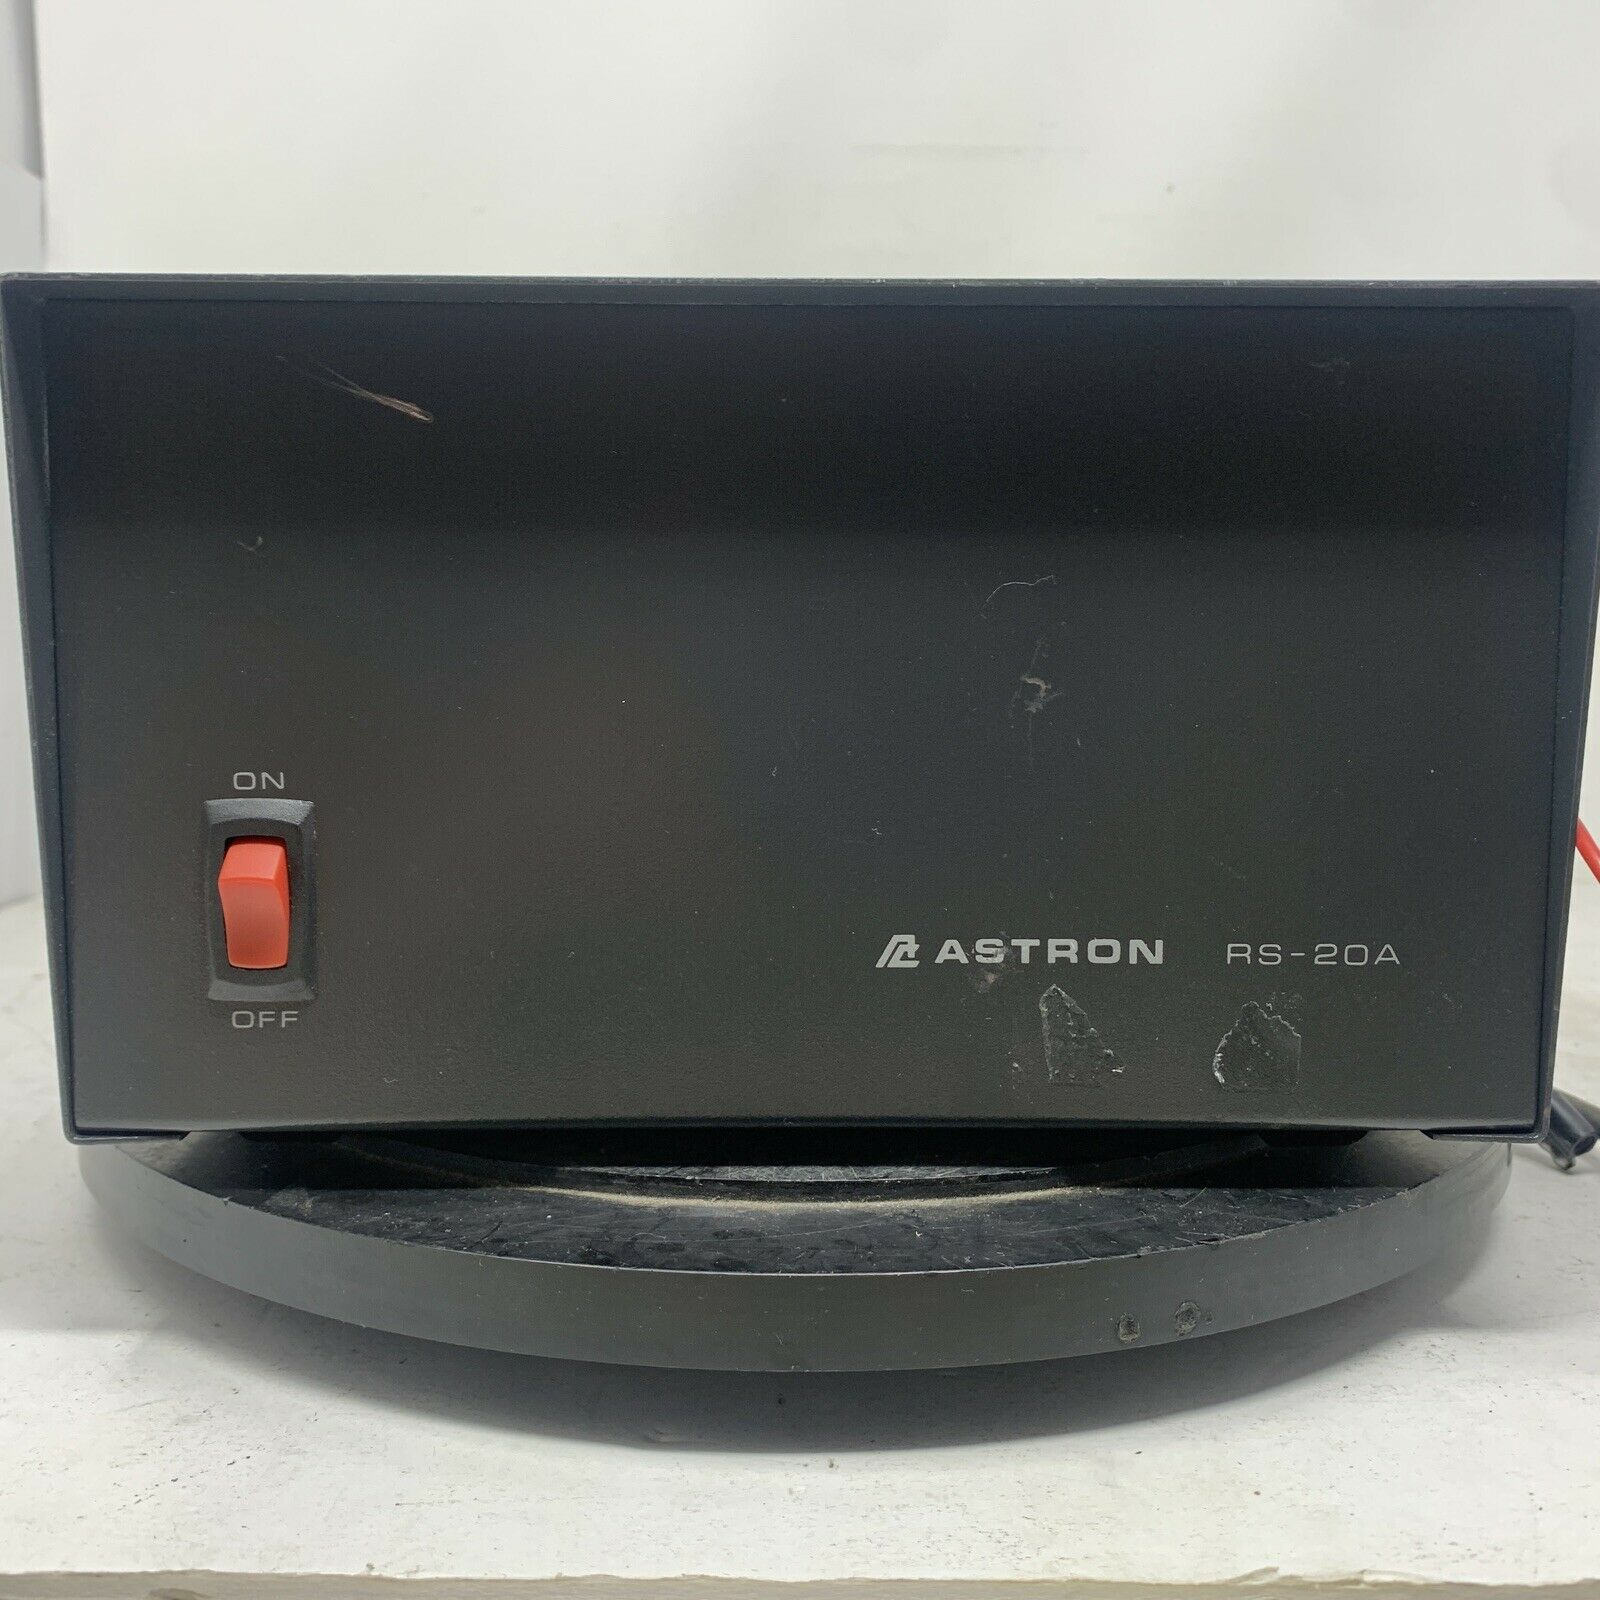 RS-20A rrr_traders Astron RS-20A Tabletop 20 Amp Power Supply MW00A(1)